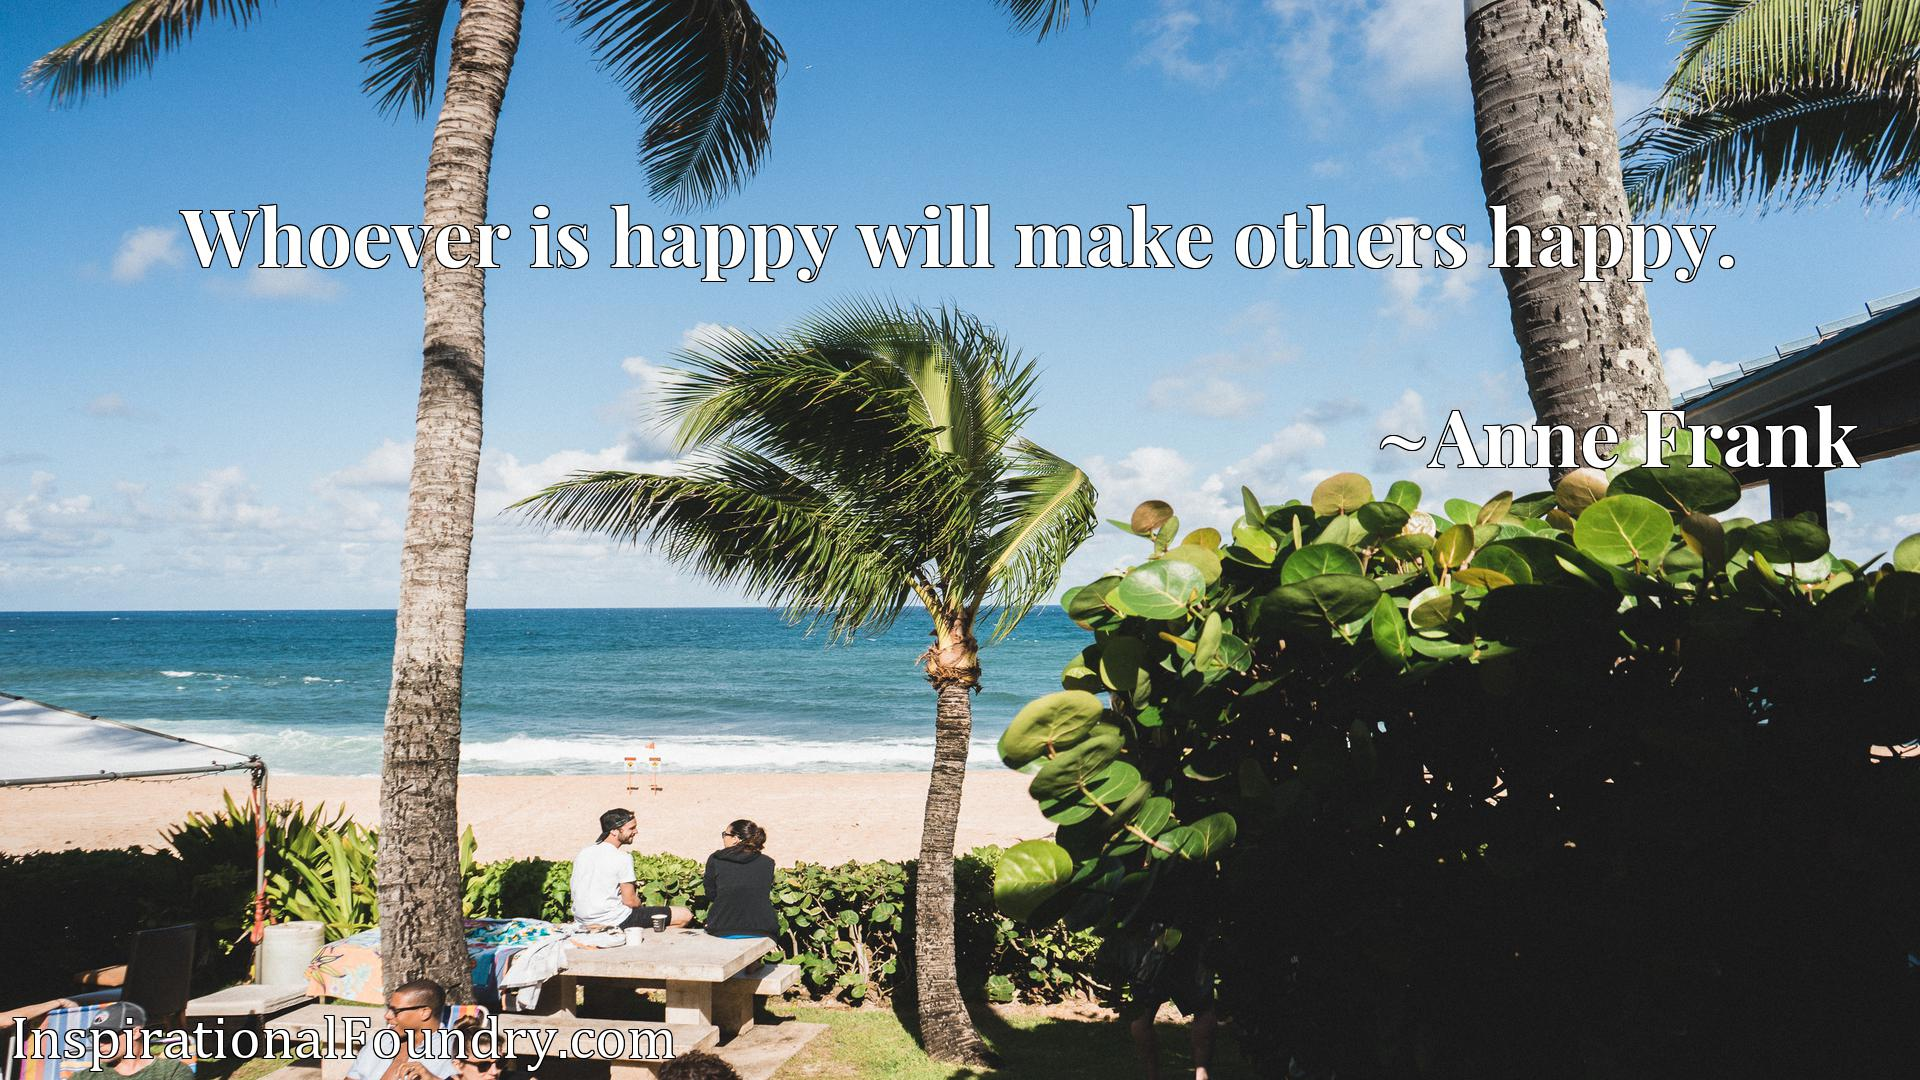 Whoever is happy will make others happy.